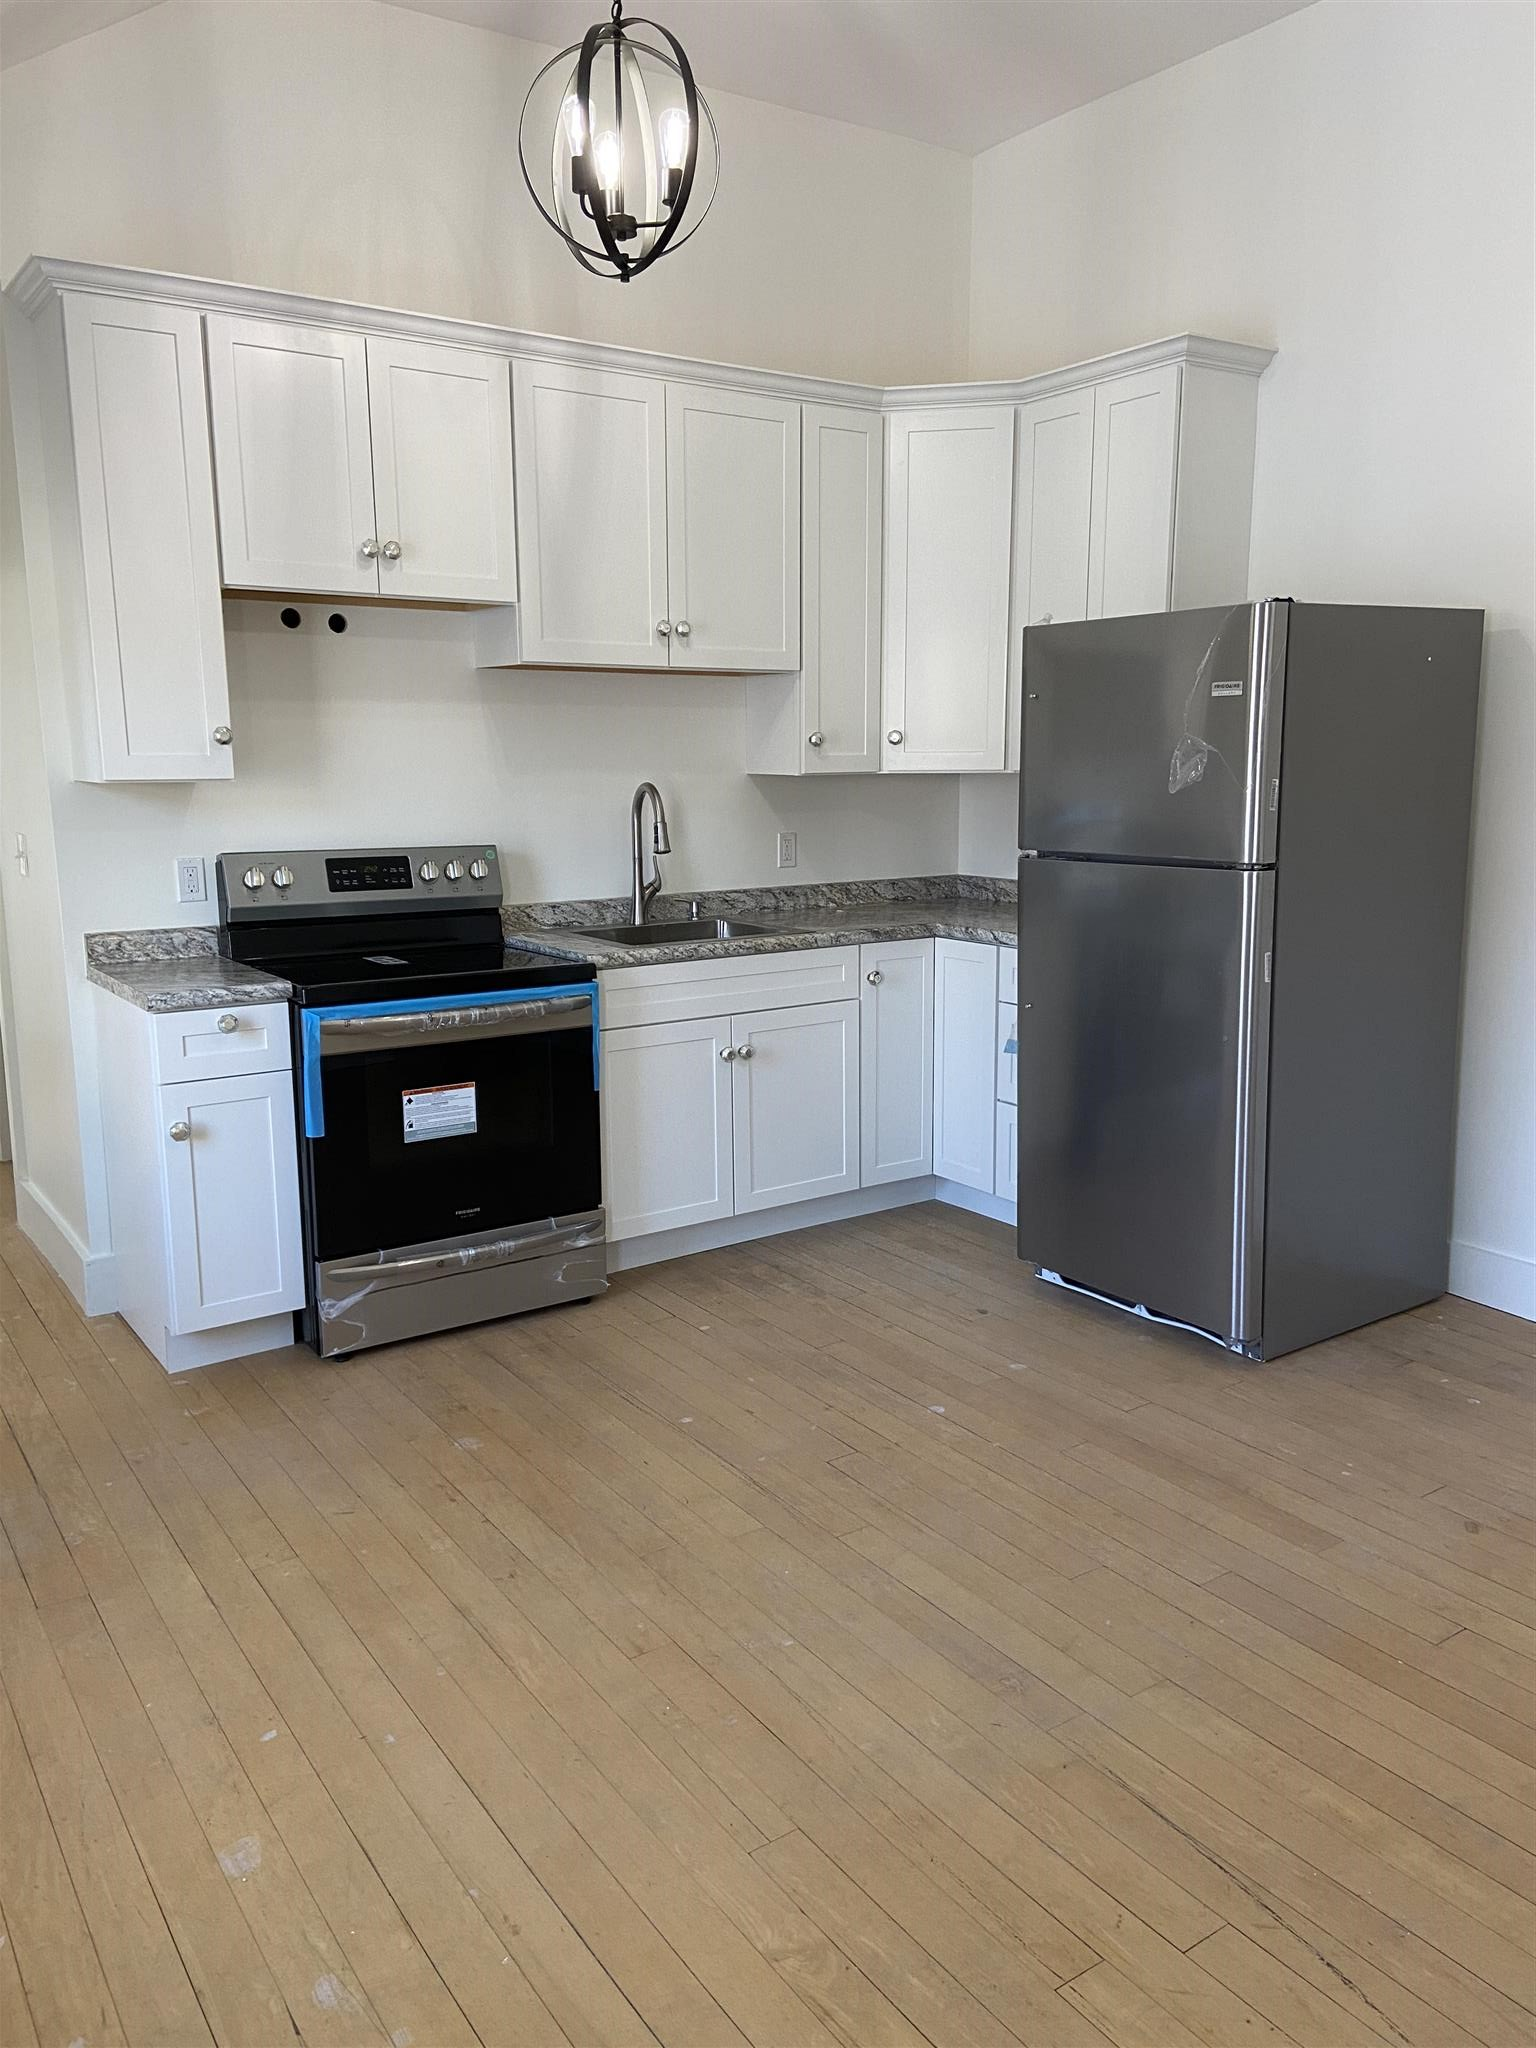 Walpole NHAll Apartments and Housing  for sale